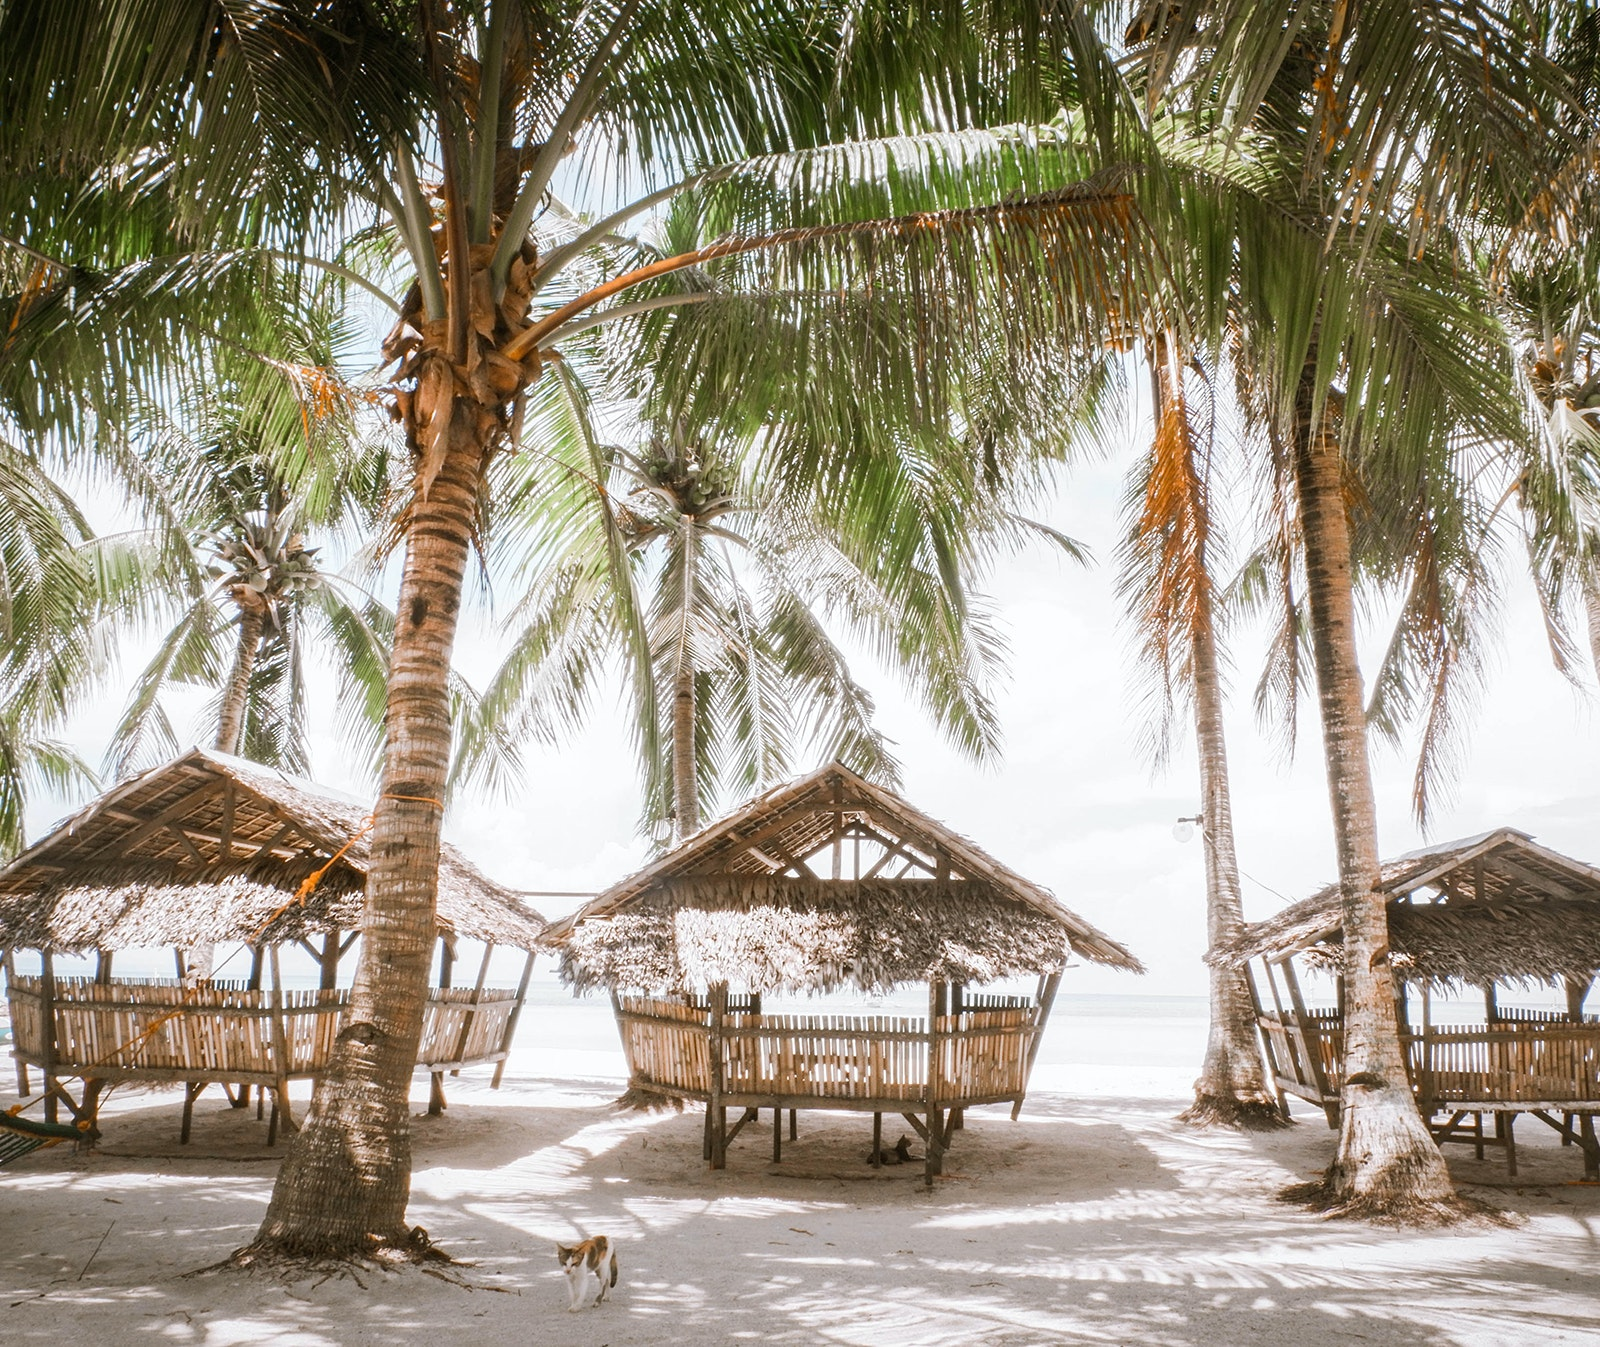 Third-party financing companies work with travel providers like United Vacations, Norwegian Cruise Line, and Expedia, so that you can book your trip now, and pay for it later.